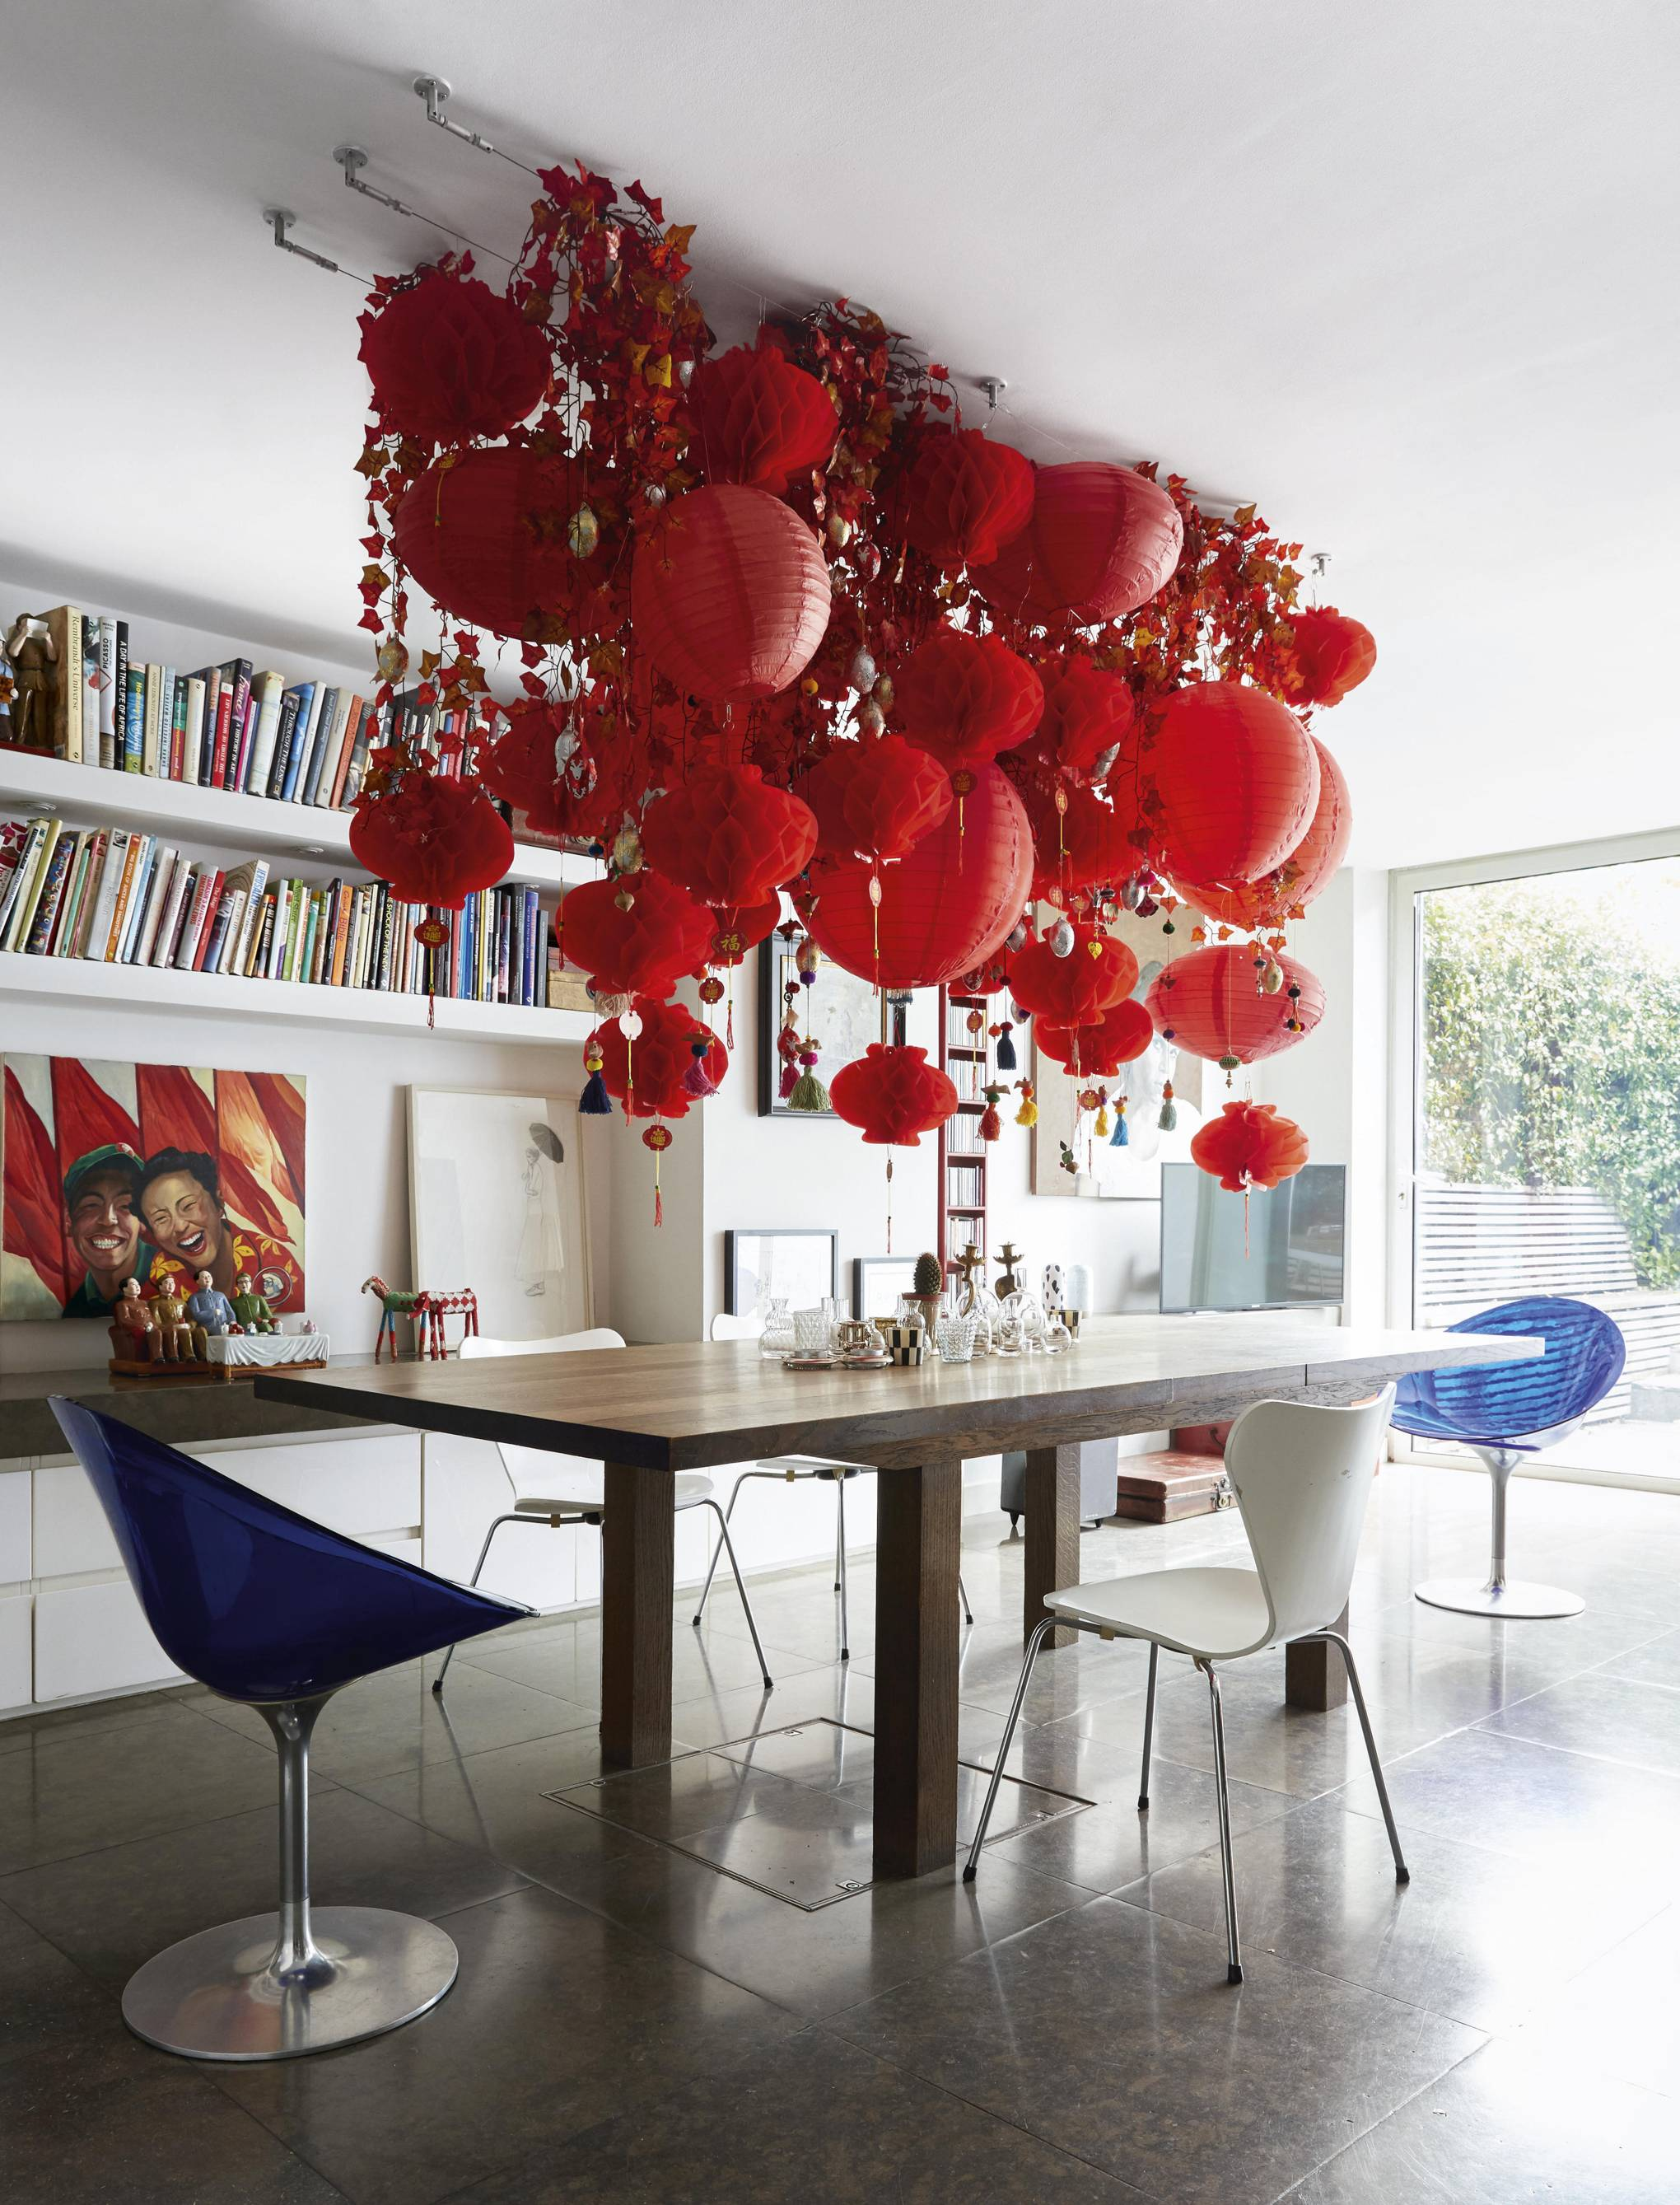 How to recreate this spectacular hanging installation from our September issue